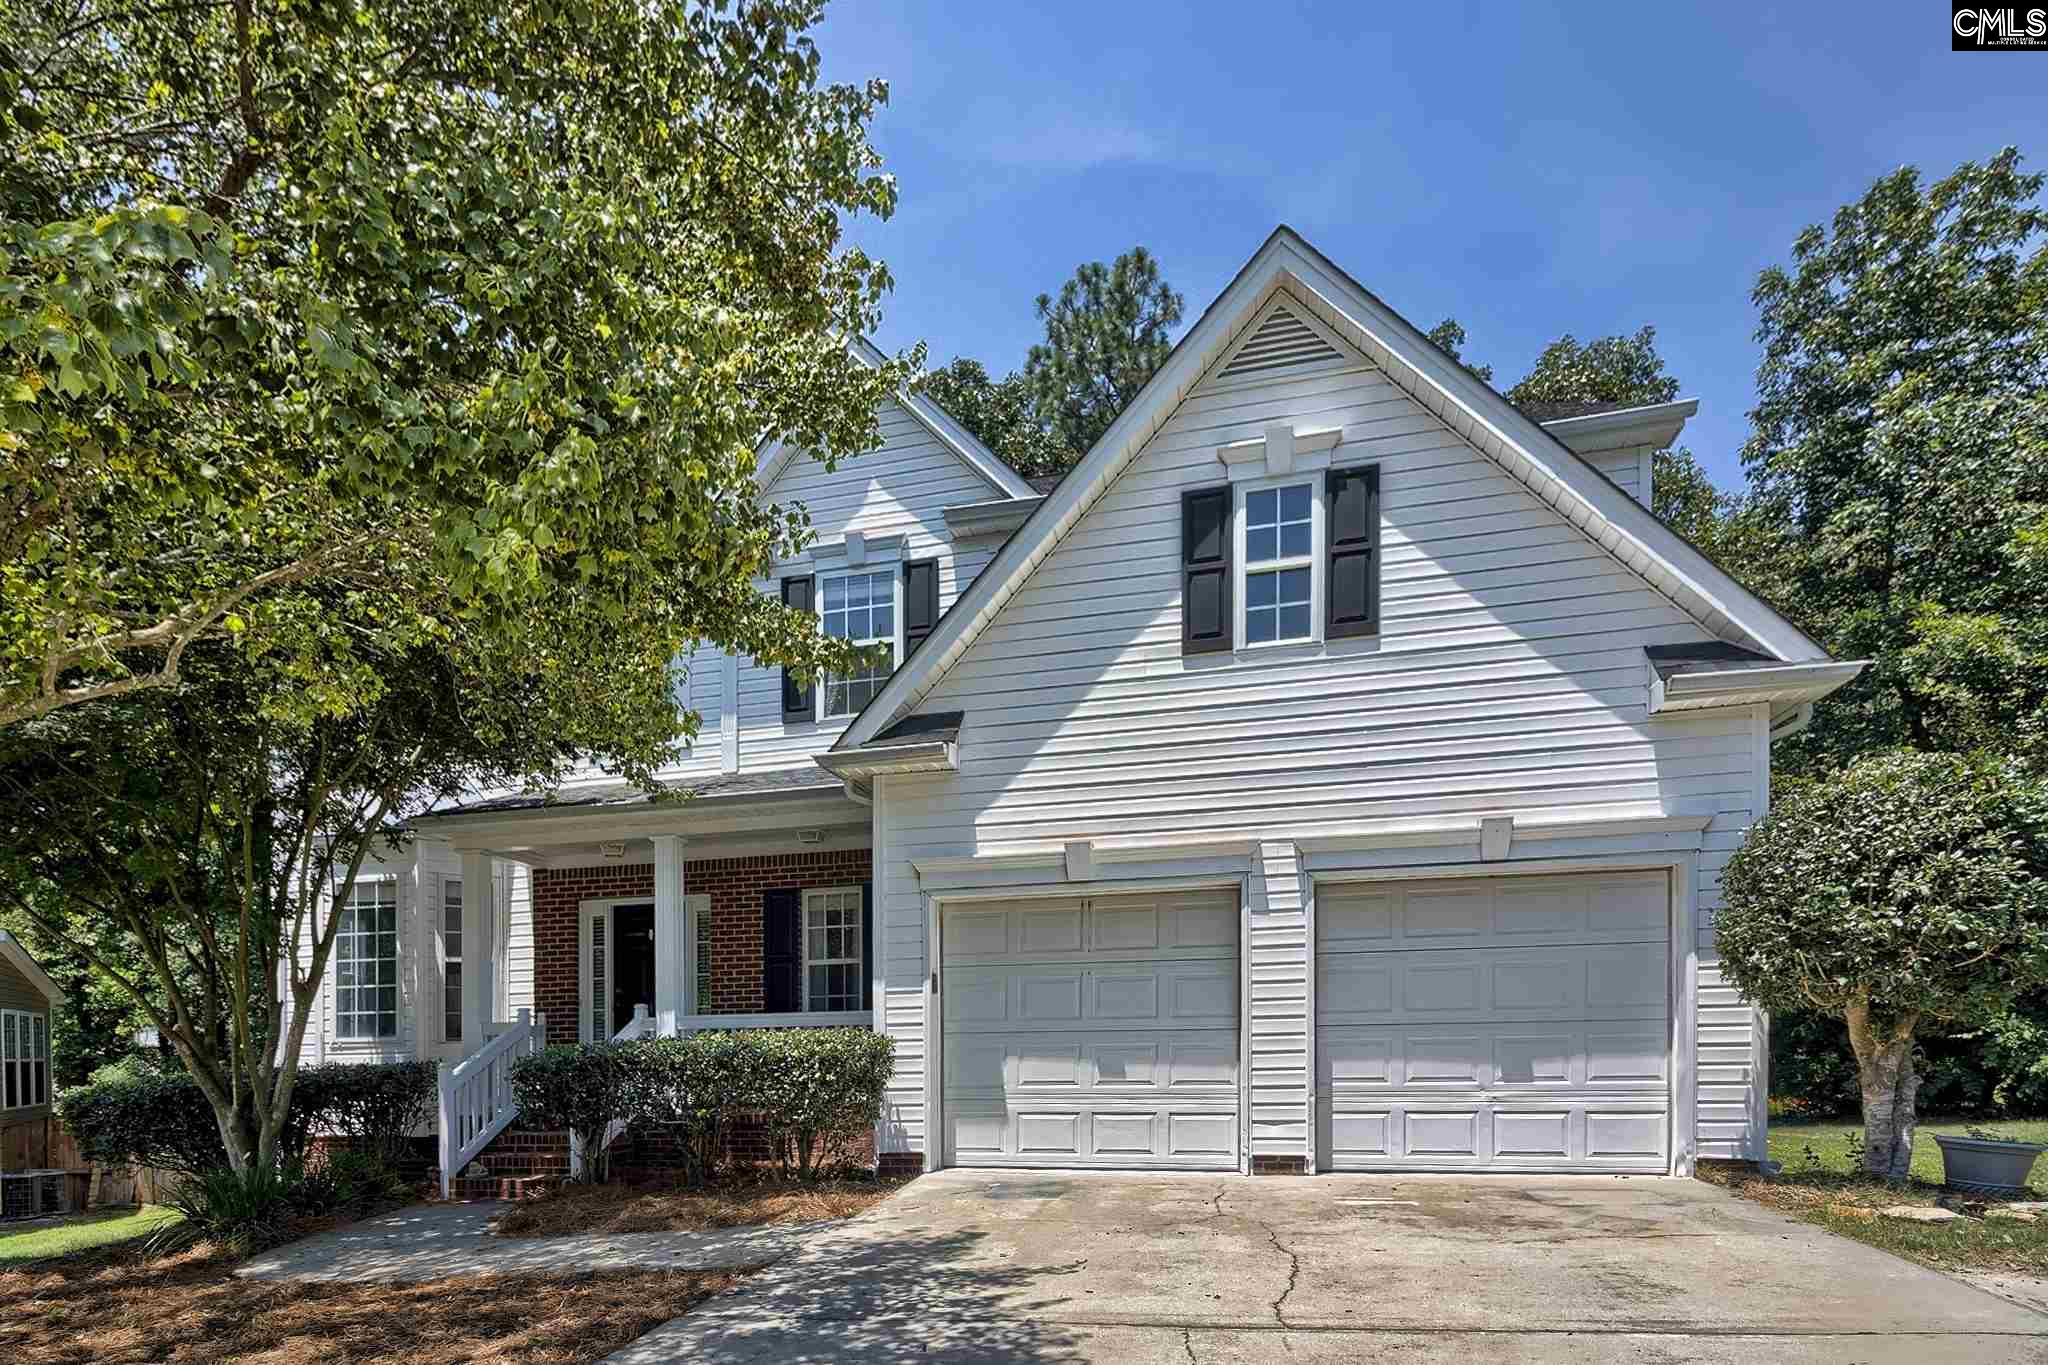 212 Kennebec Lexington, SC 29072